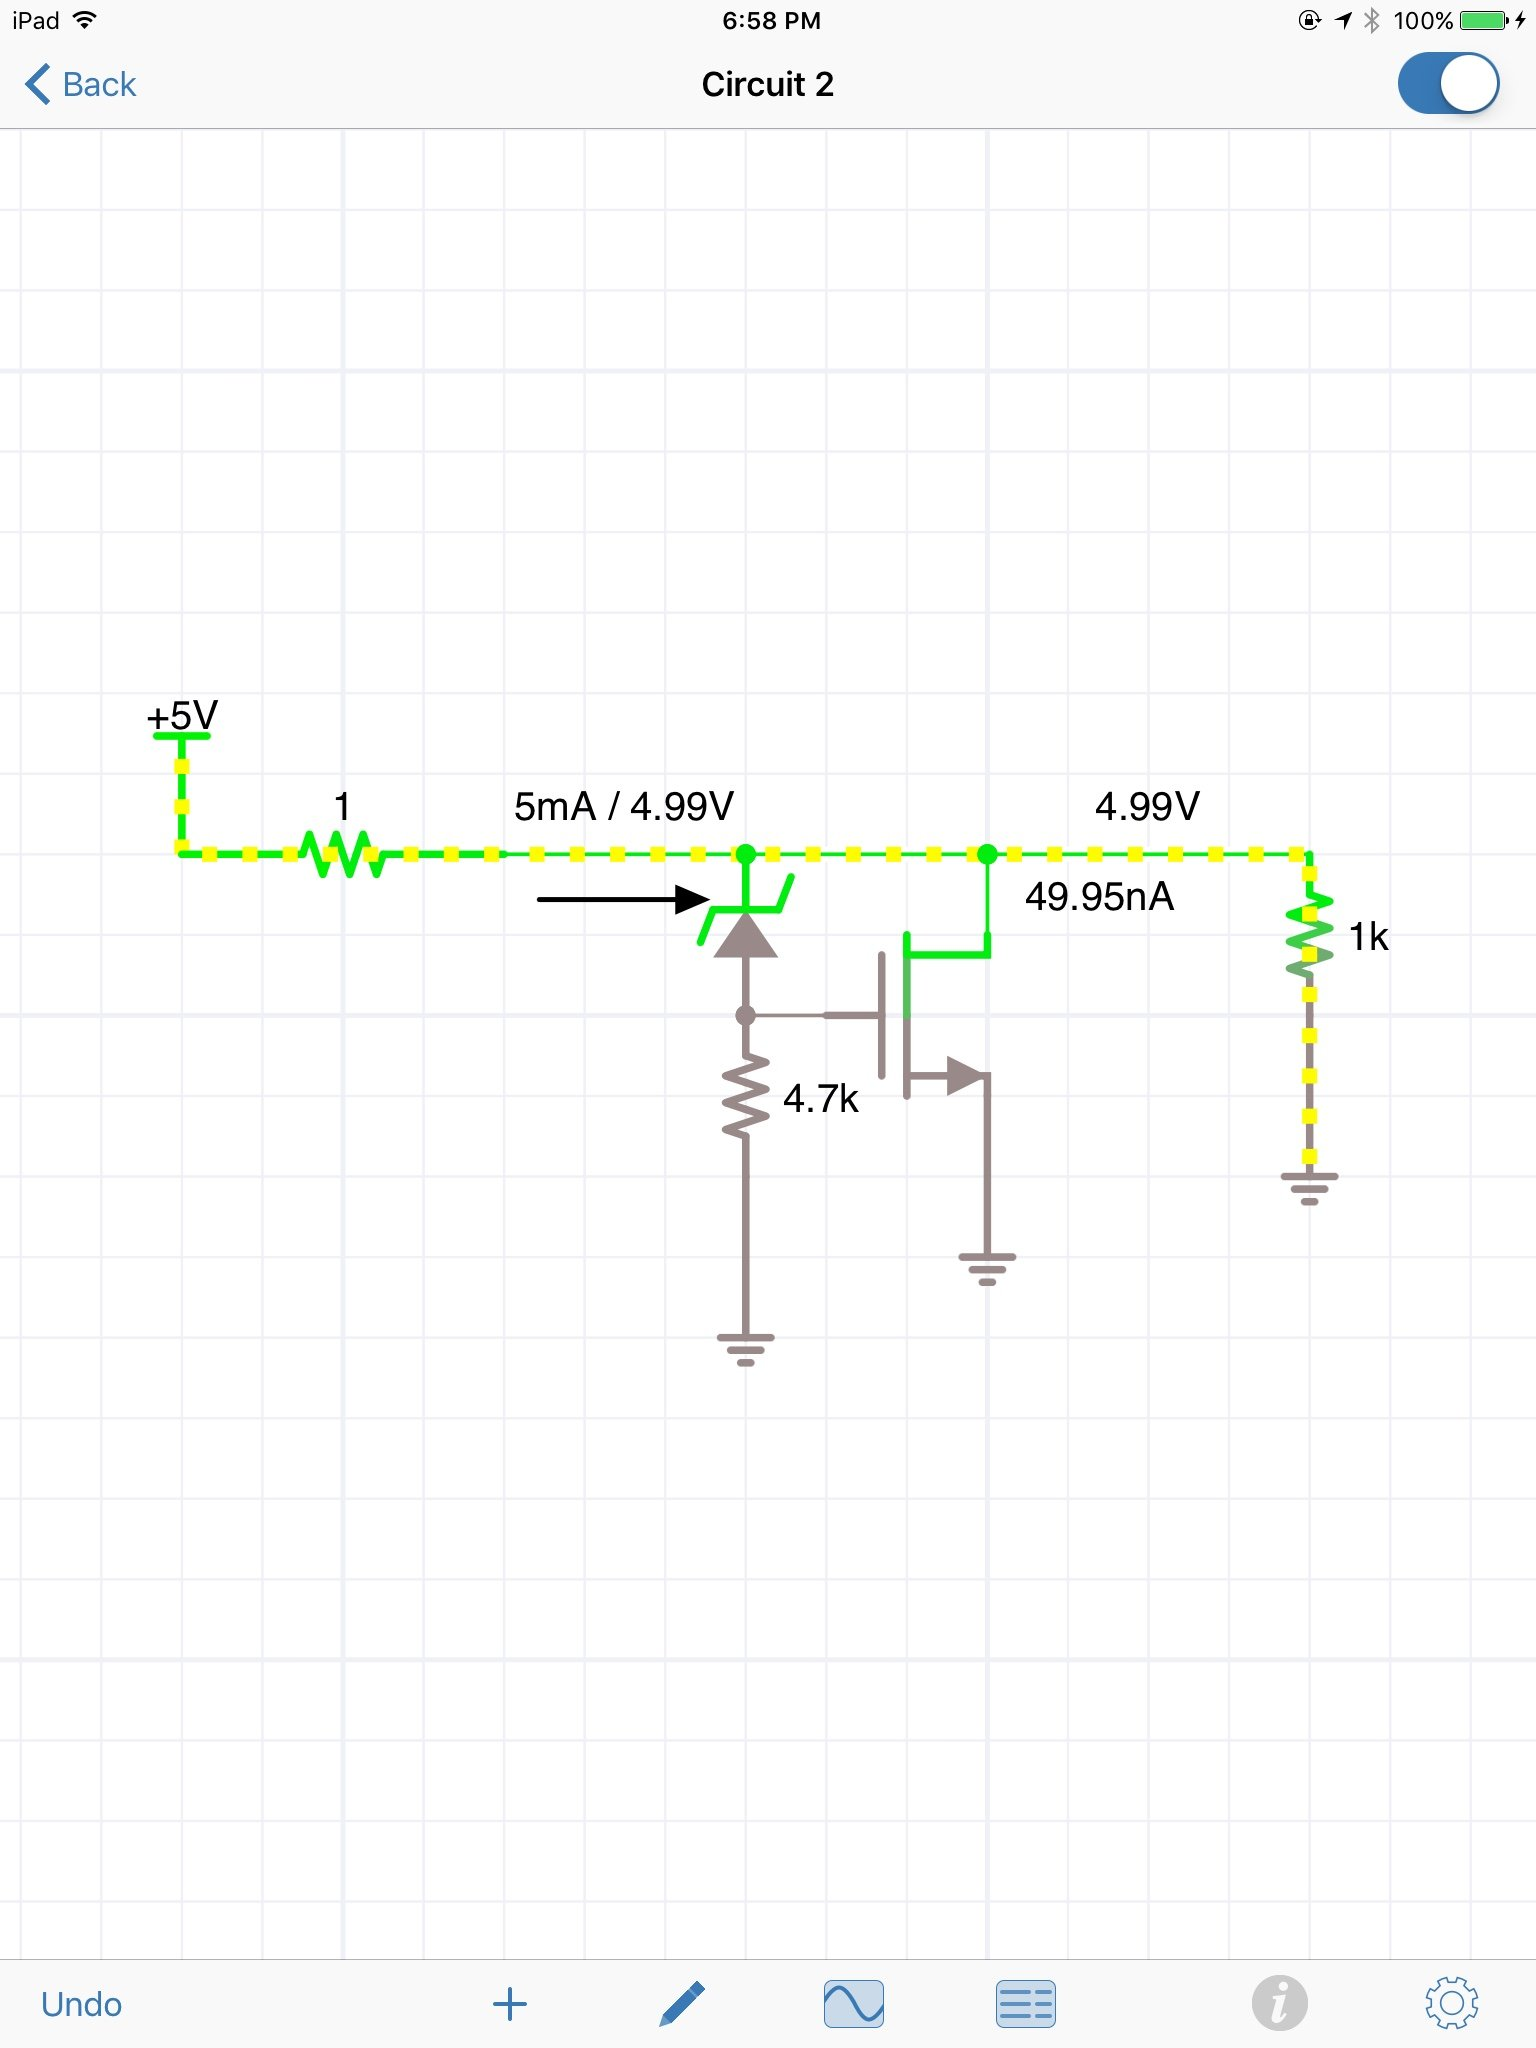 2n7000 Strange Behaviour Page 1 Voltage Divider Circuit Diagram In This I Used A 12v Zener But You Could Go With 20v One If Want Basically It Will Trigger At The N Fets Threshold